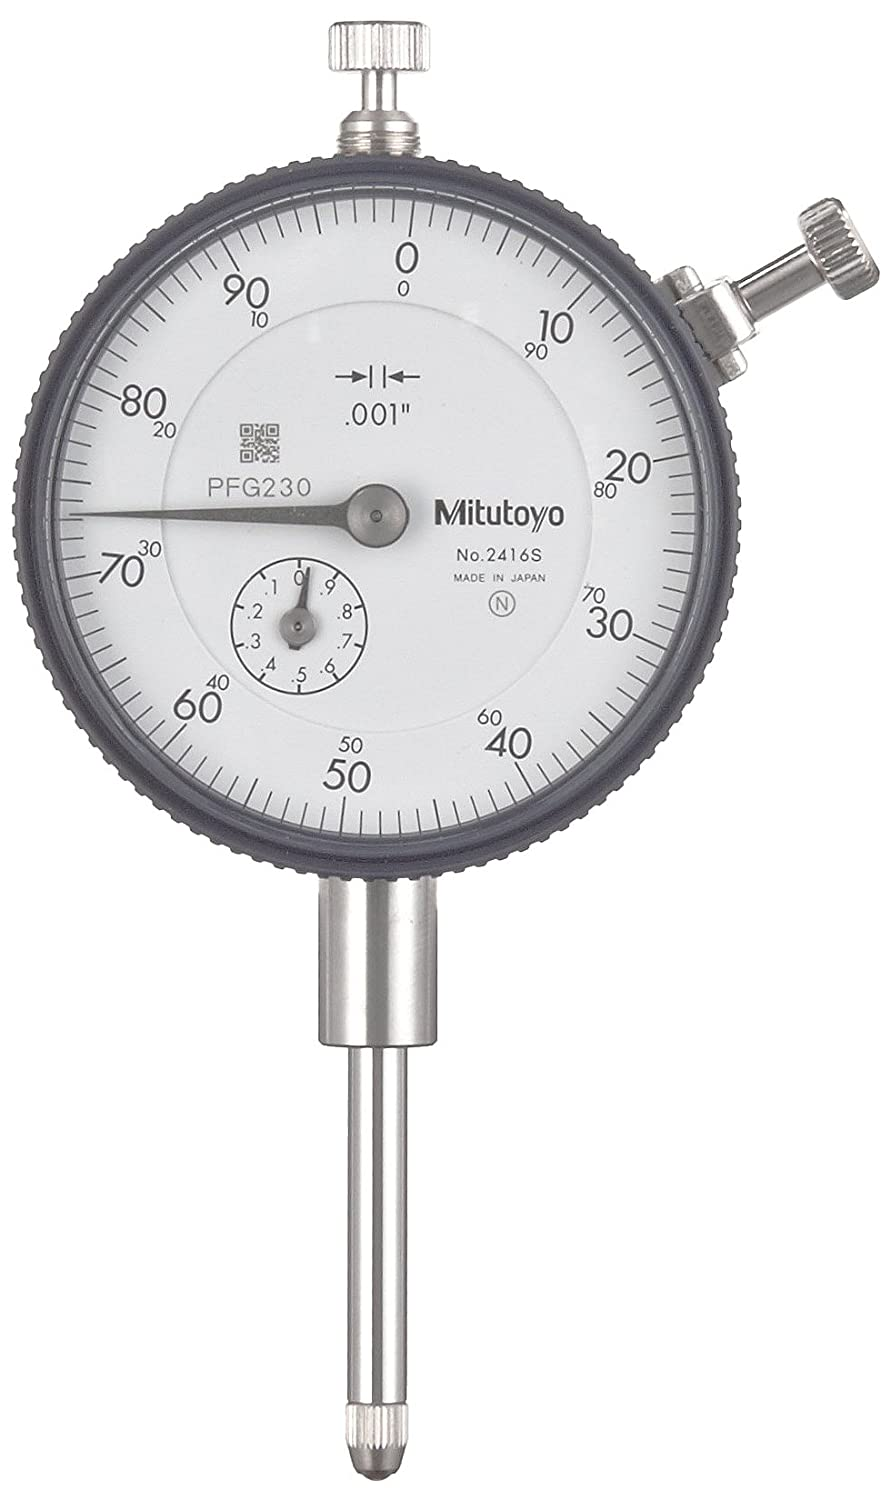 Mitutoyo2416S Dial Indicator 4 48 UNF Thread 0.375 Stem Dia lug Back White Dial 0 100 Reading 2.244 Dial Dia 0 1 Range 0.001 Graduation 0.002 Accuracy